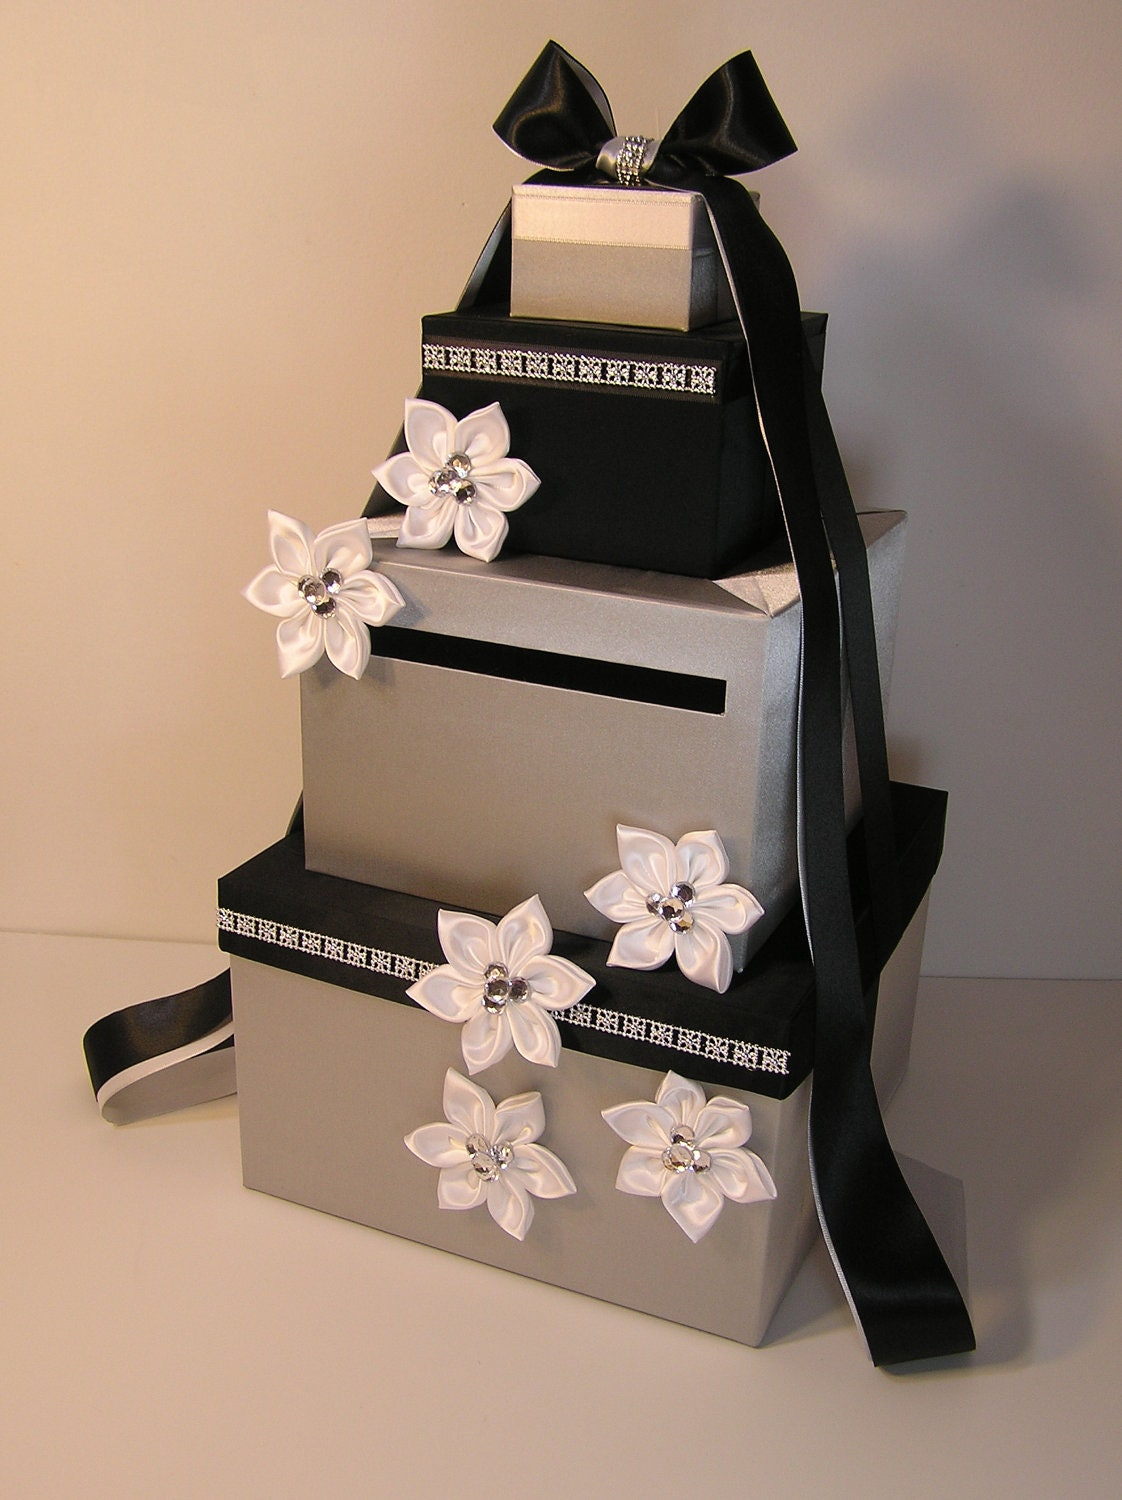 Black And White Wedding Gift Card Box : Wedding Card Box Silver and Black / White Gift Card Box Money